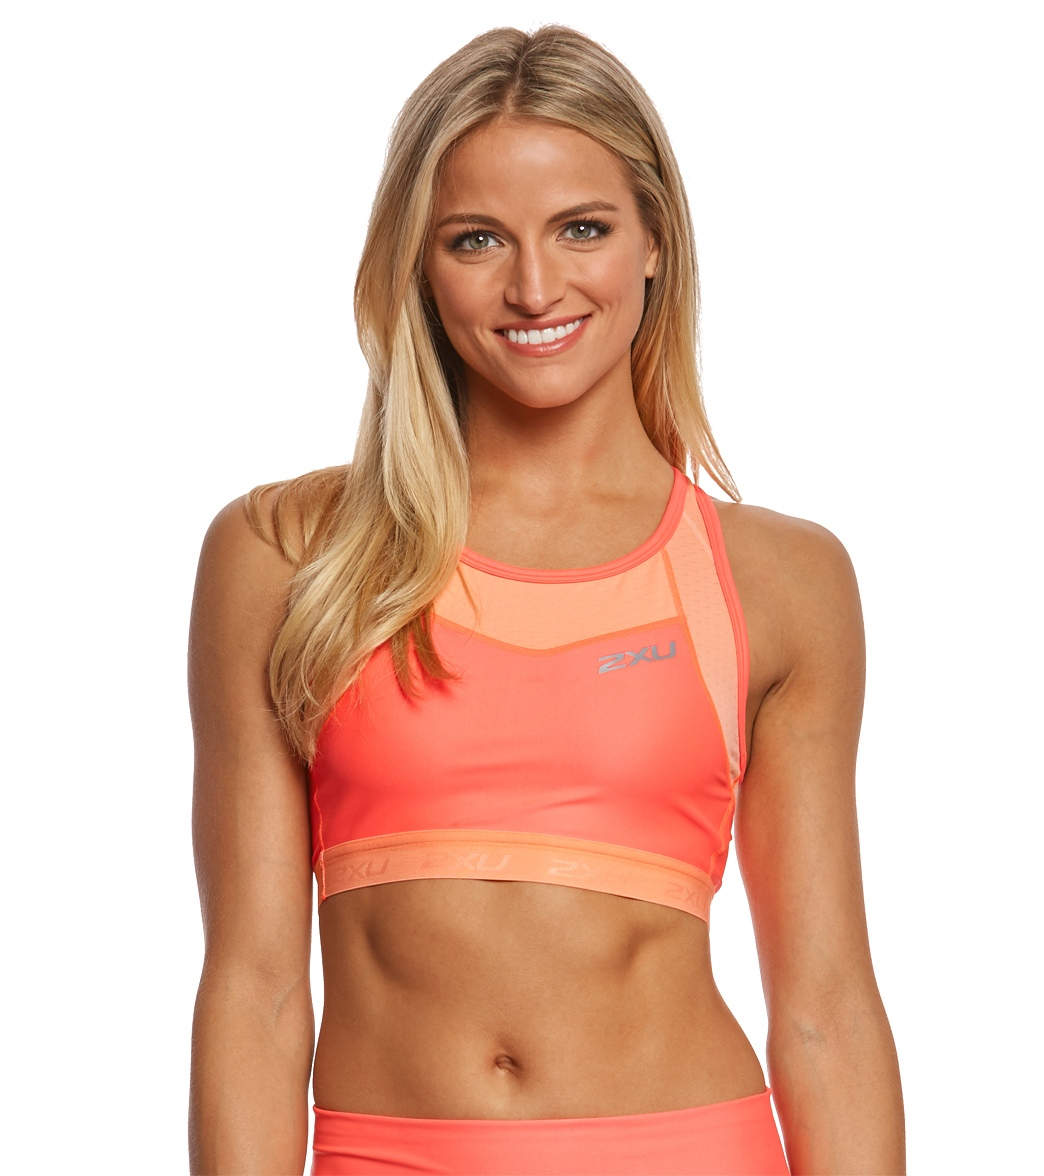 2XU Women s X-Vent Tri Crop Top at SwimOutlet.com - Free Shipping 9caf58a1355e9